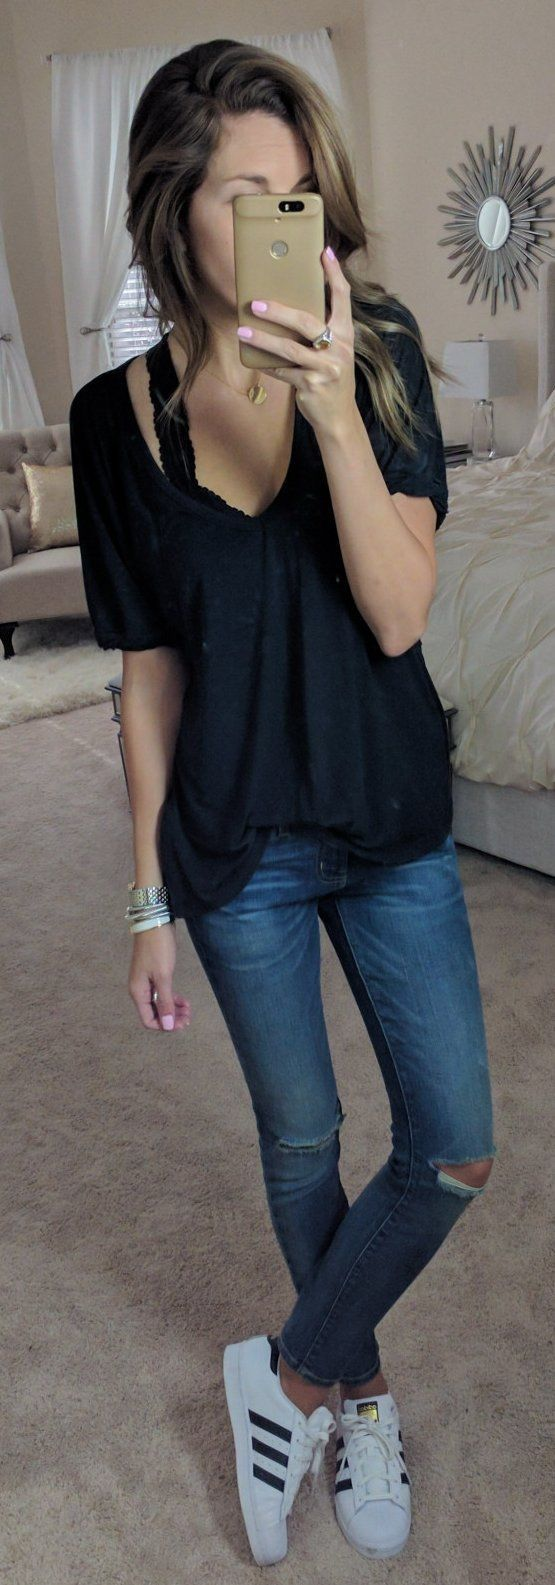 Spring Style // Destroyed skinny jeans with black top and lace bralette.